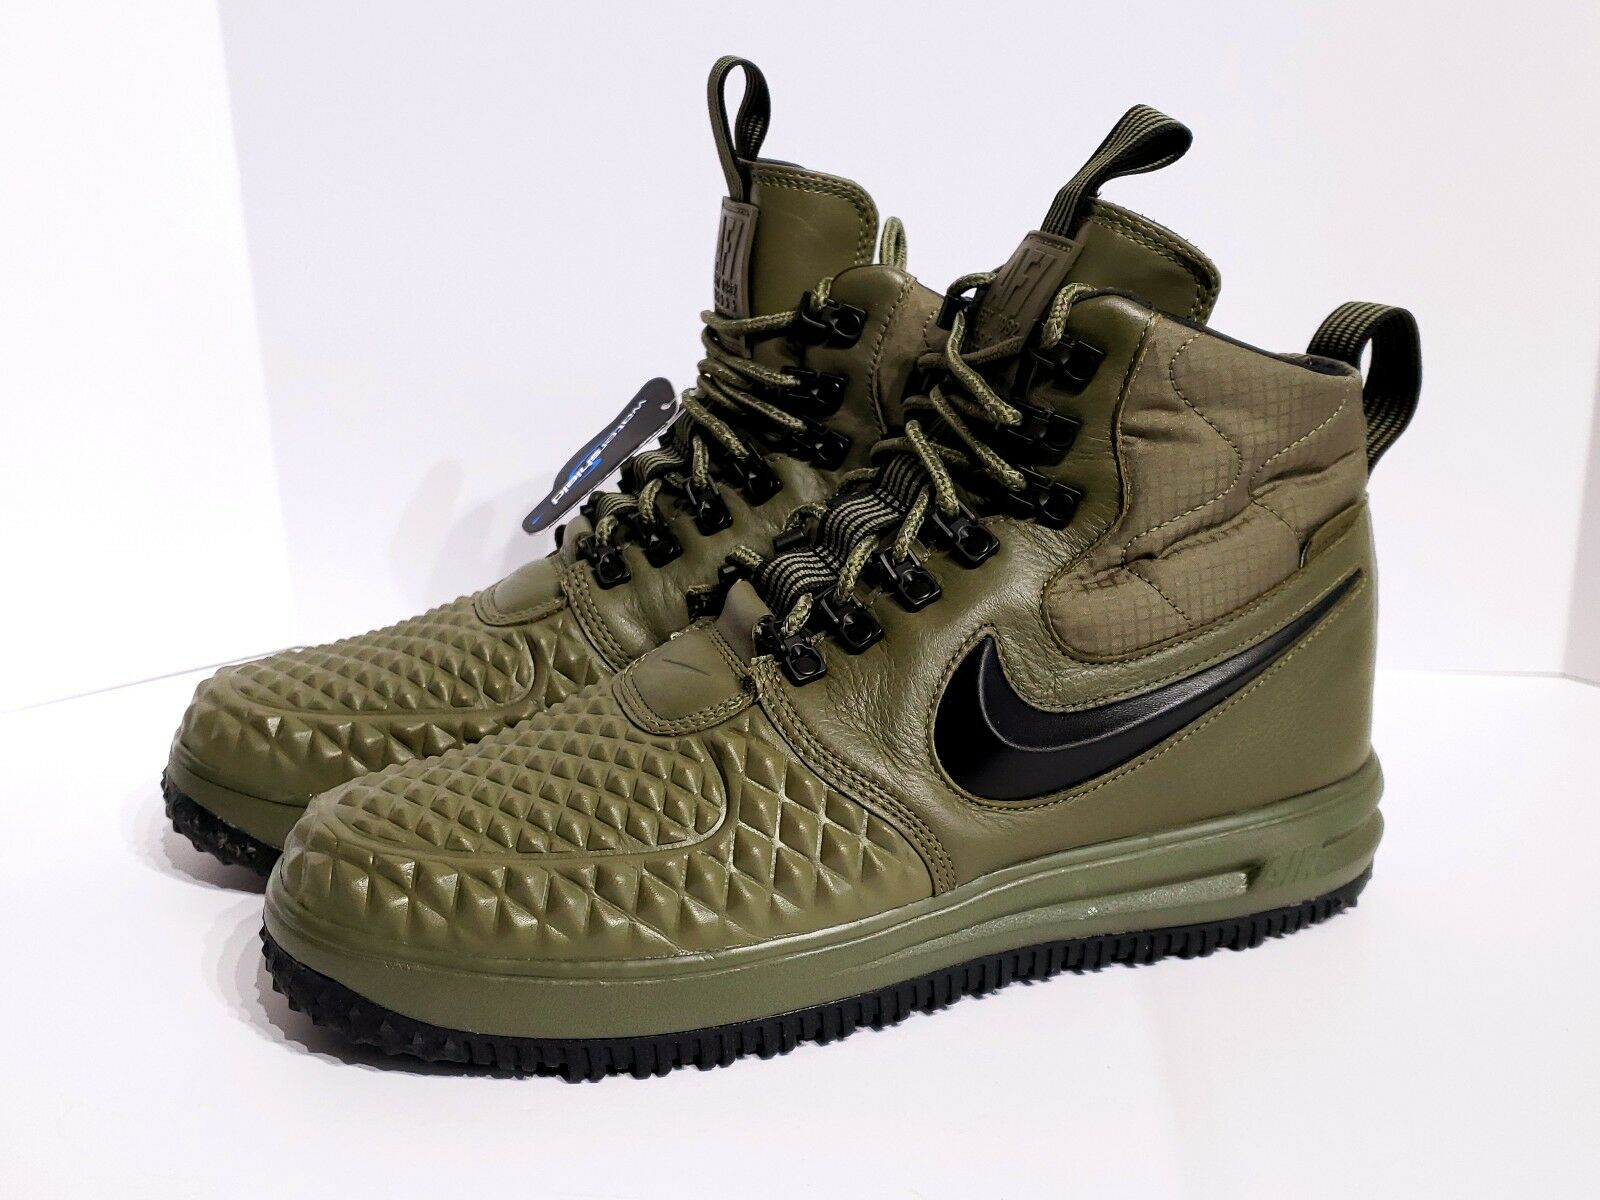 Nike LF1 Duckboot Duckboot Duckboot 17 Medium Olive Green Air Force One 916682-202 Mens SZ 10.5 0c1e30